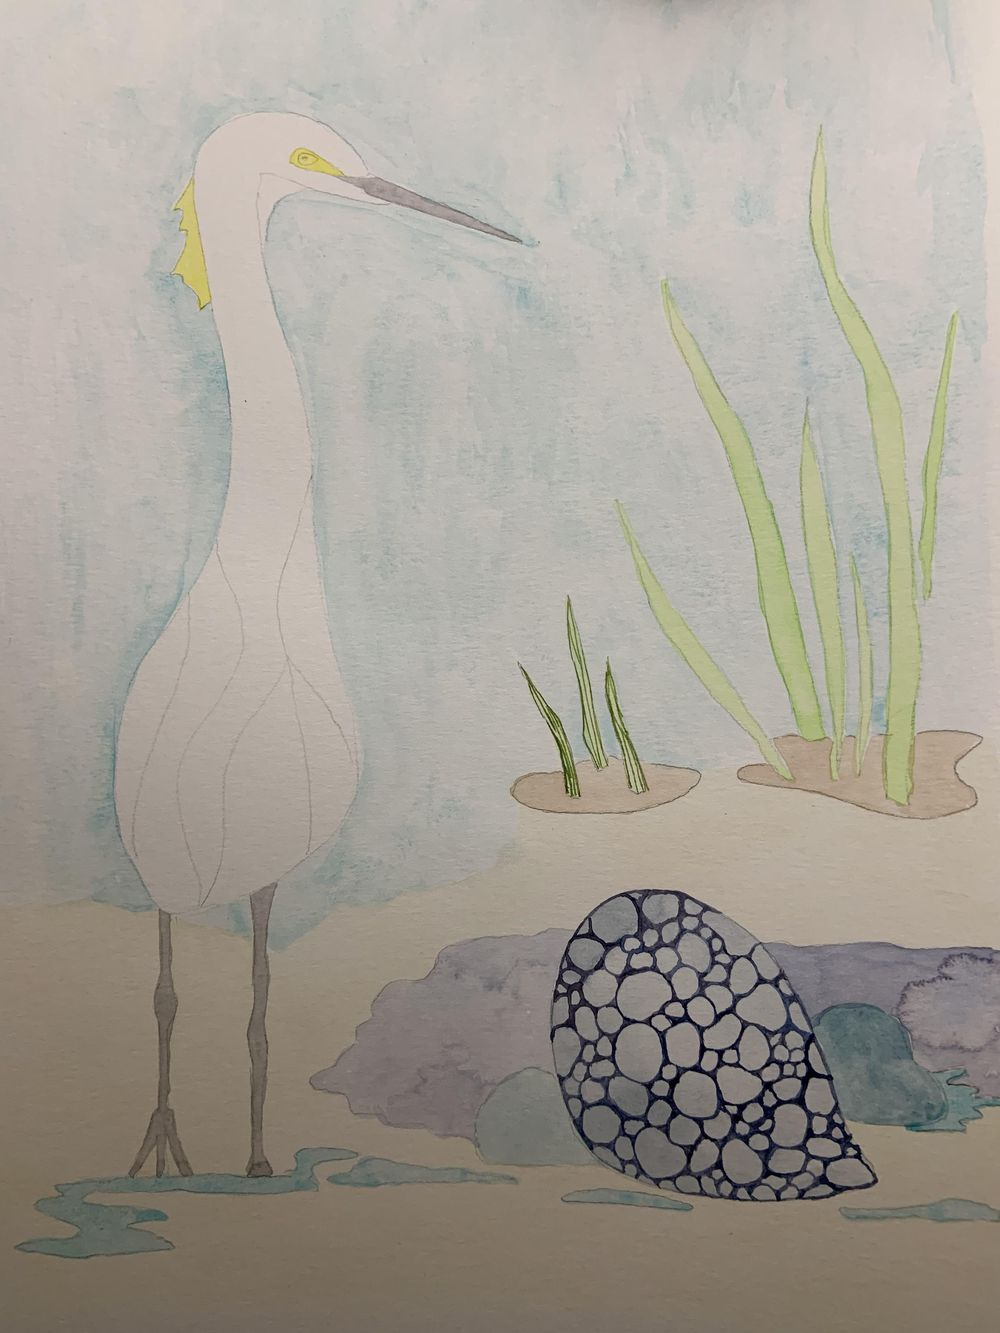 Snowy Egret - image 3 - student project